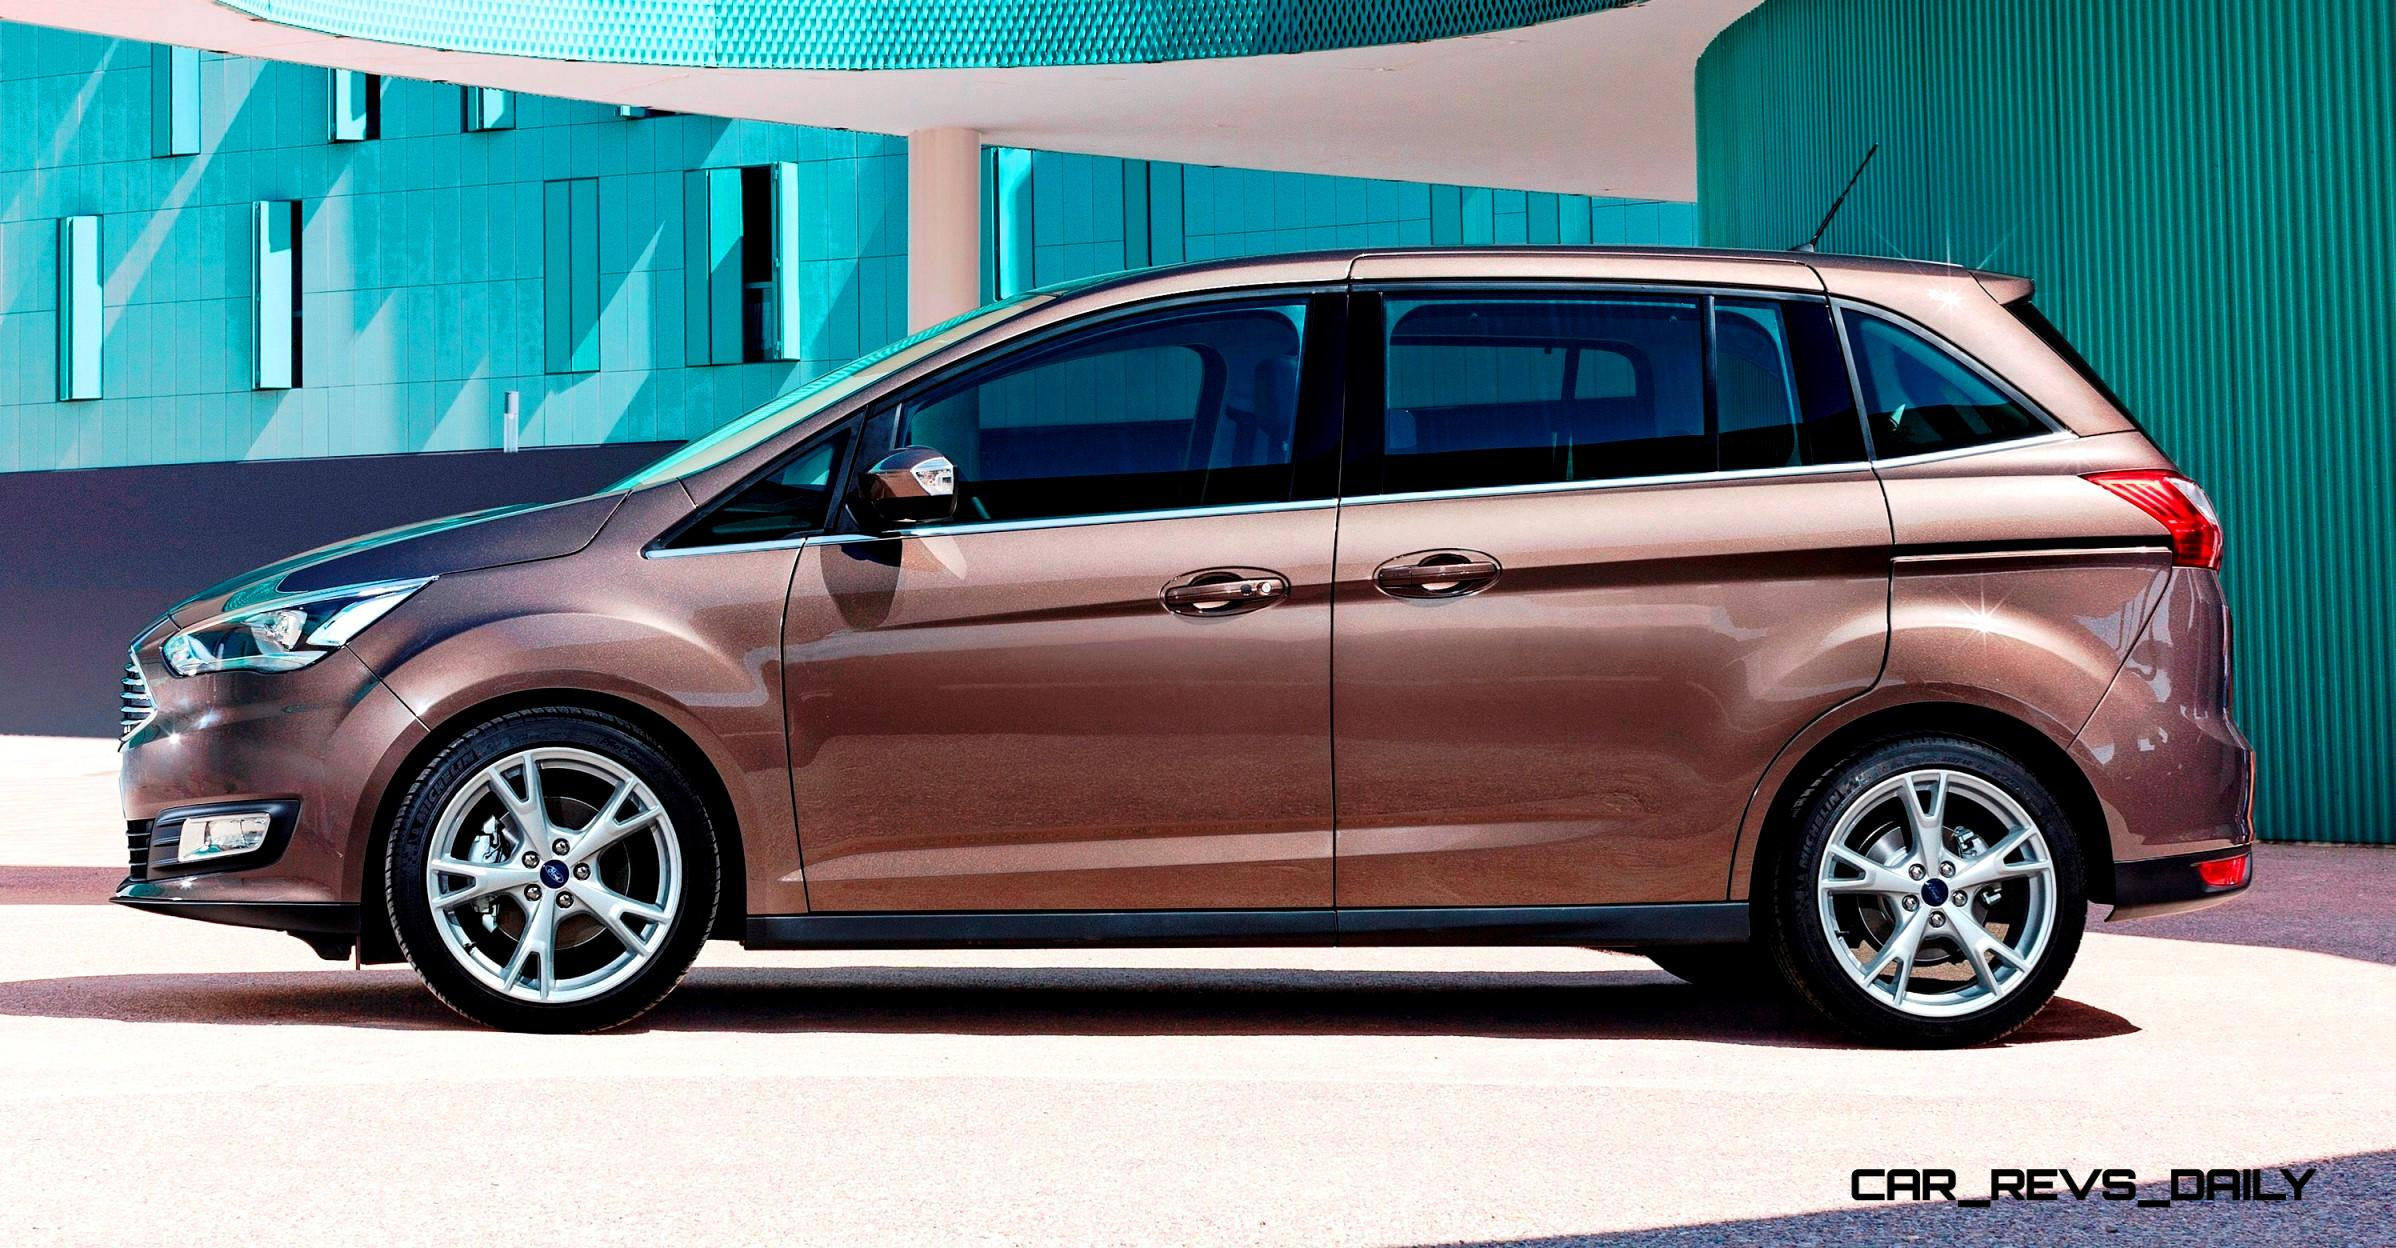 2015 ford c max and 7 seat grand c max make uk debut with revised styling and tech. Black Bedroom Furniture Sets. Home Design Ideas